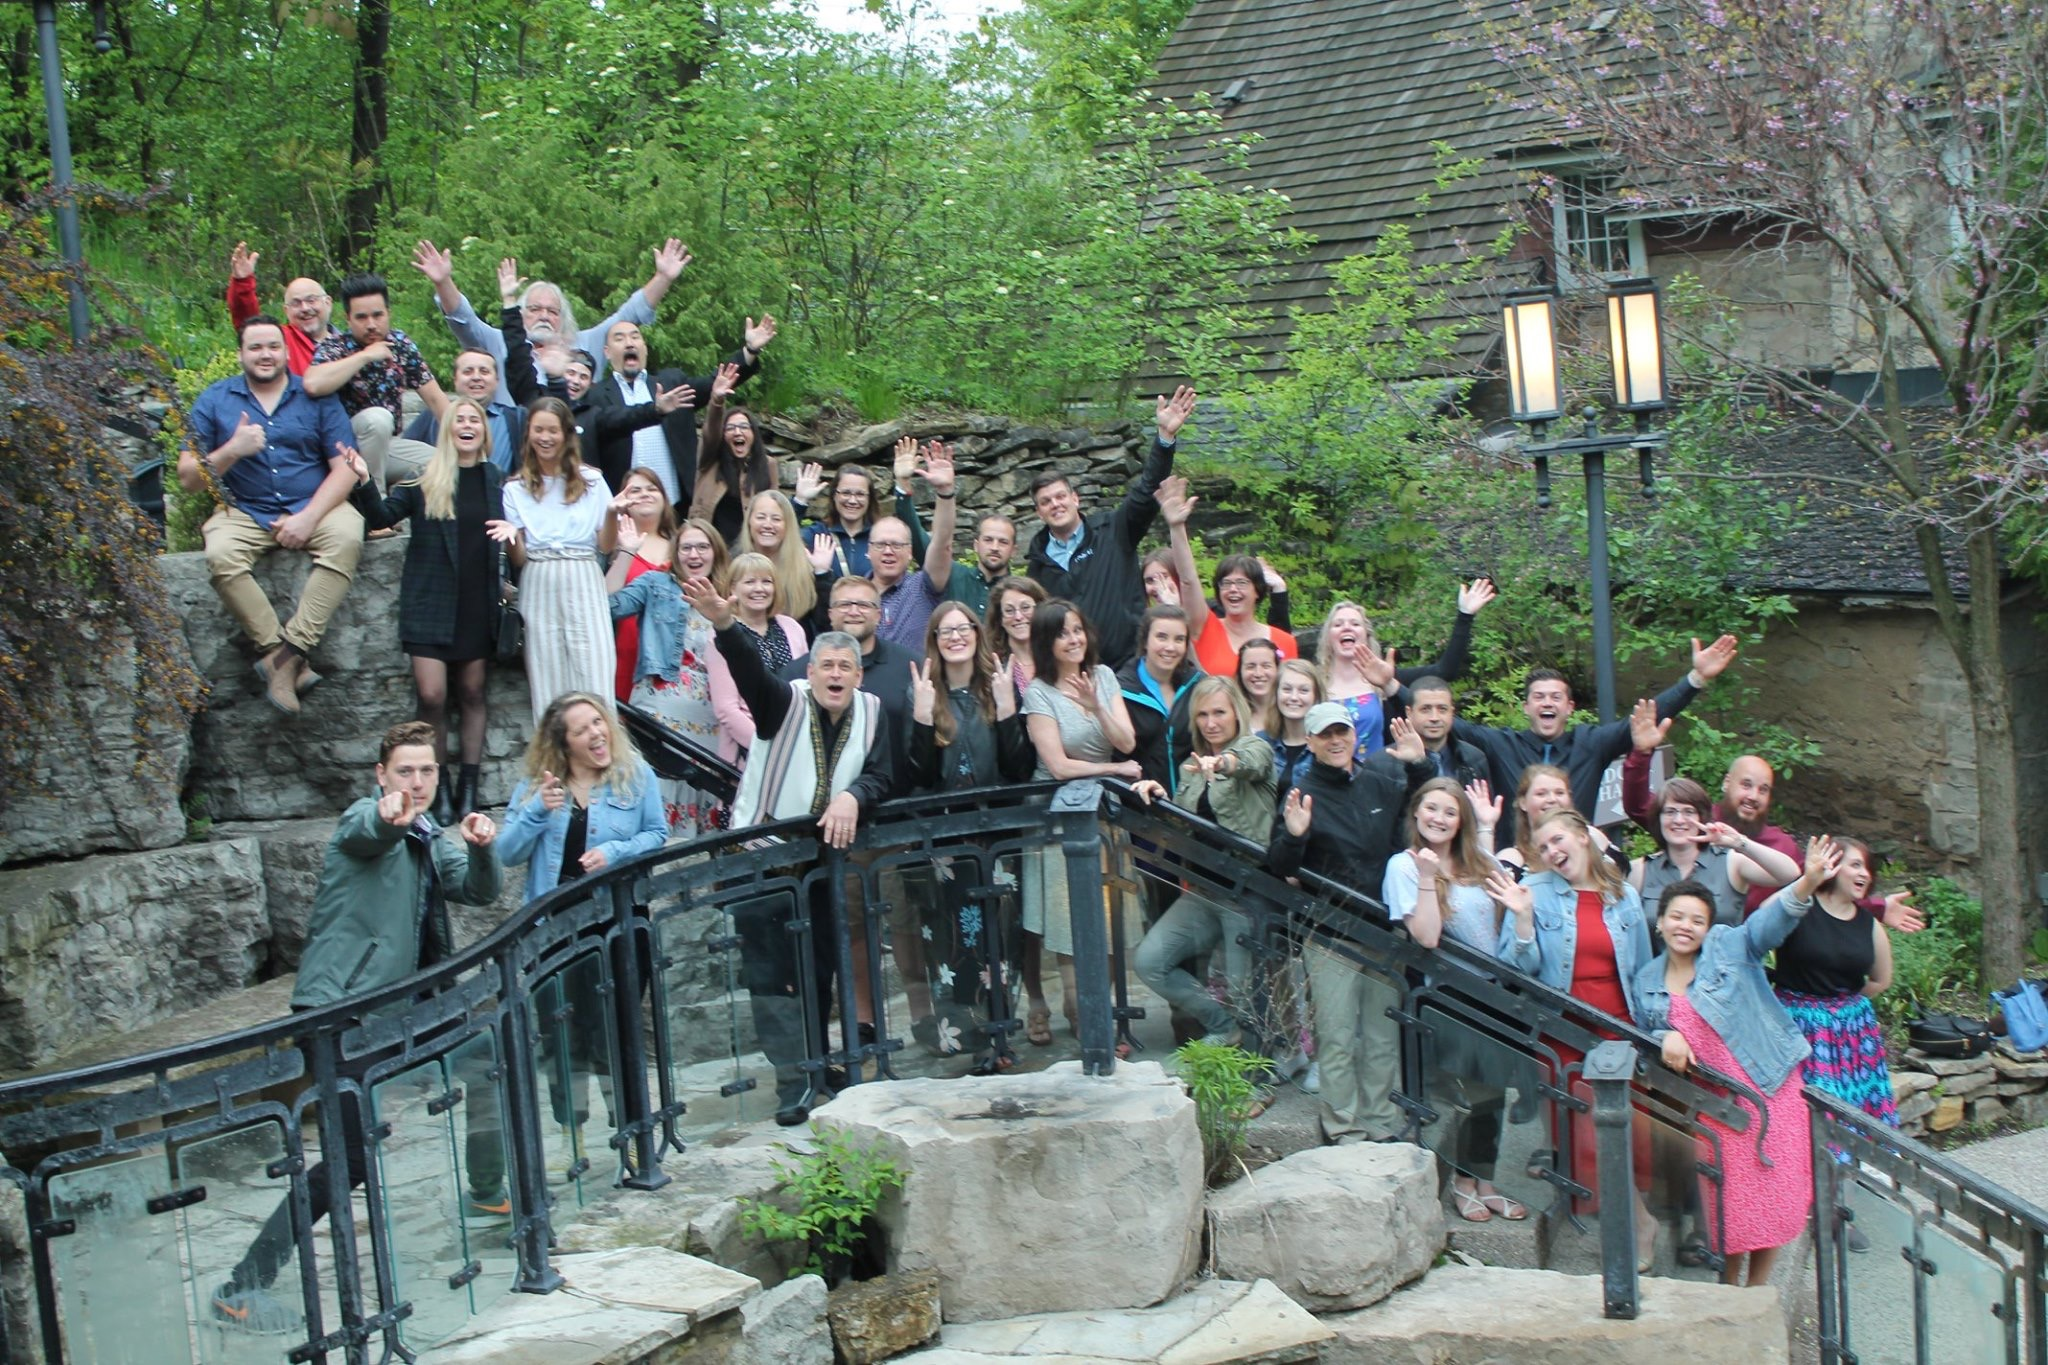 All the National Staff and attendees from the week out at our wrap-up event which took place at the beautiful Ancaster Mill restaurant in Hamilton.